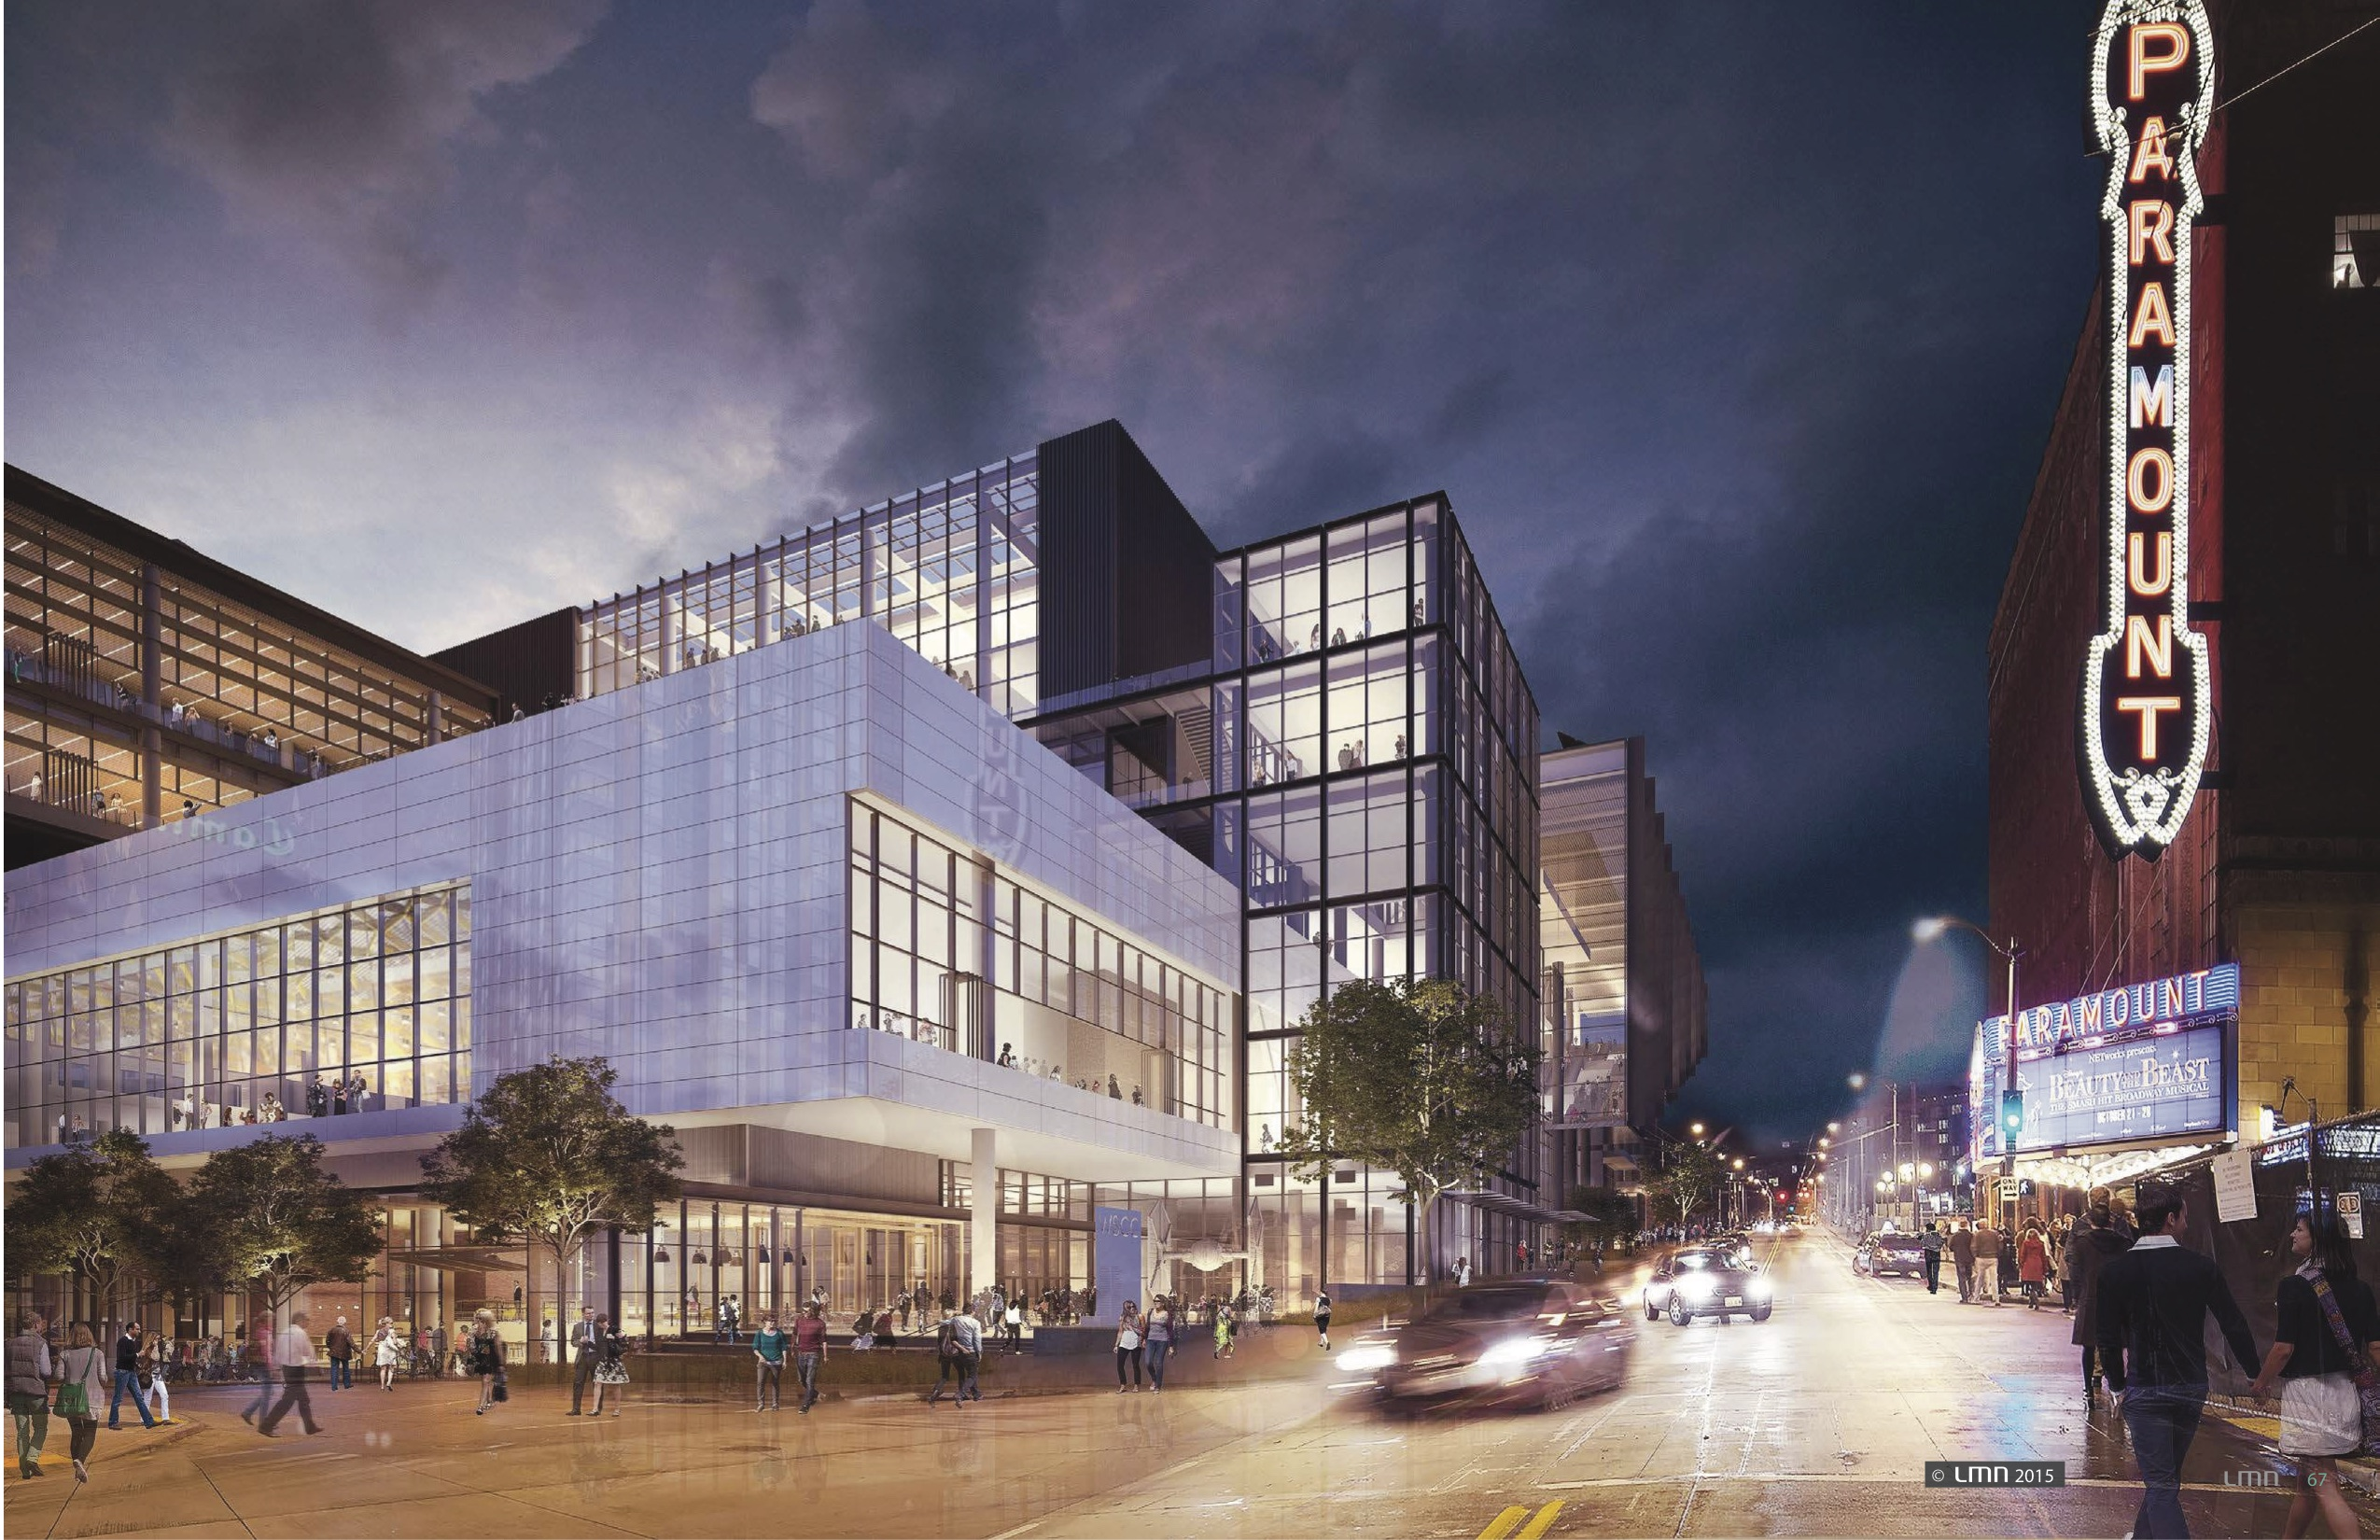 A rendering of a squat, glass building to the left of the existing Paramount Theater